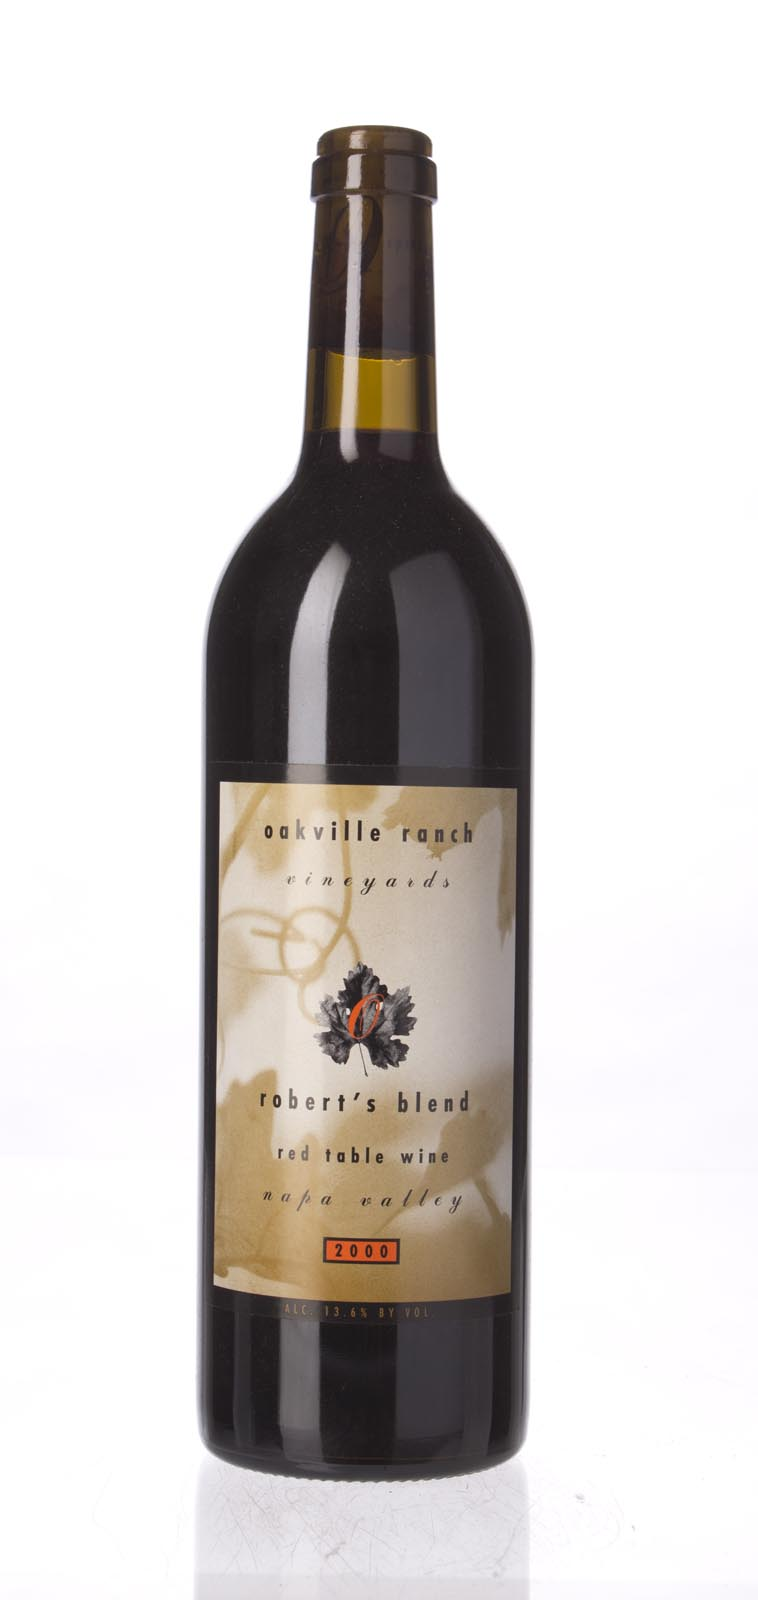 Oakville Ranch Cabernet Franc Robert`s Blend 2000, 750ml () from The BPW - Merchants of rare and fine wines.